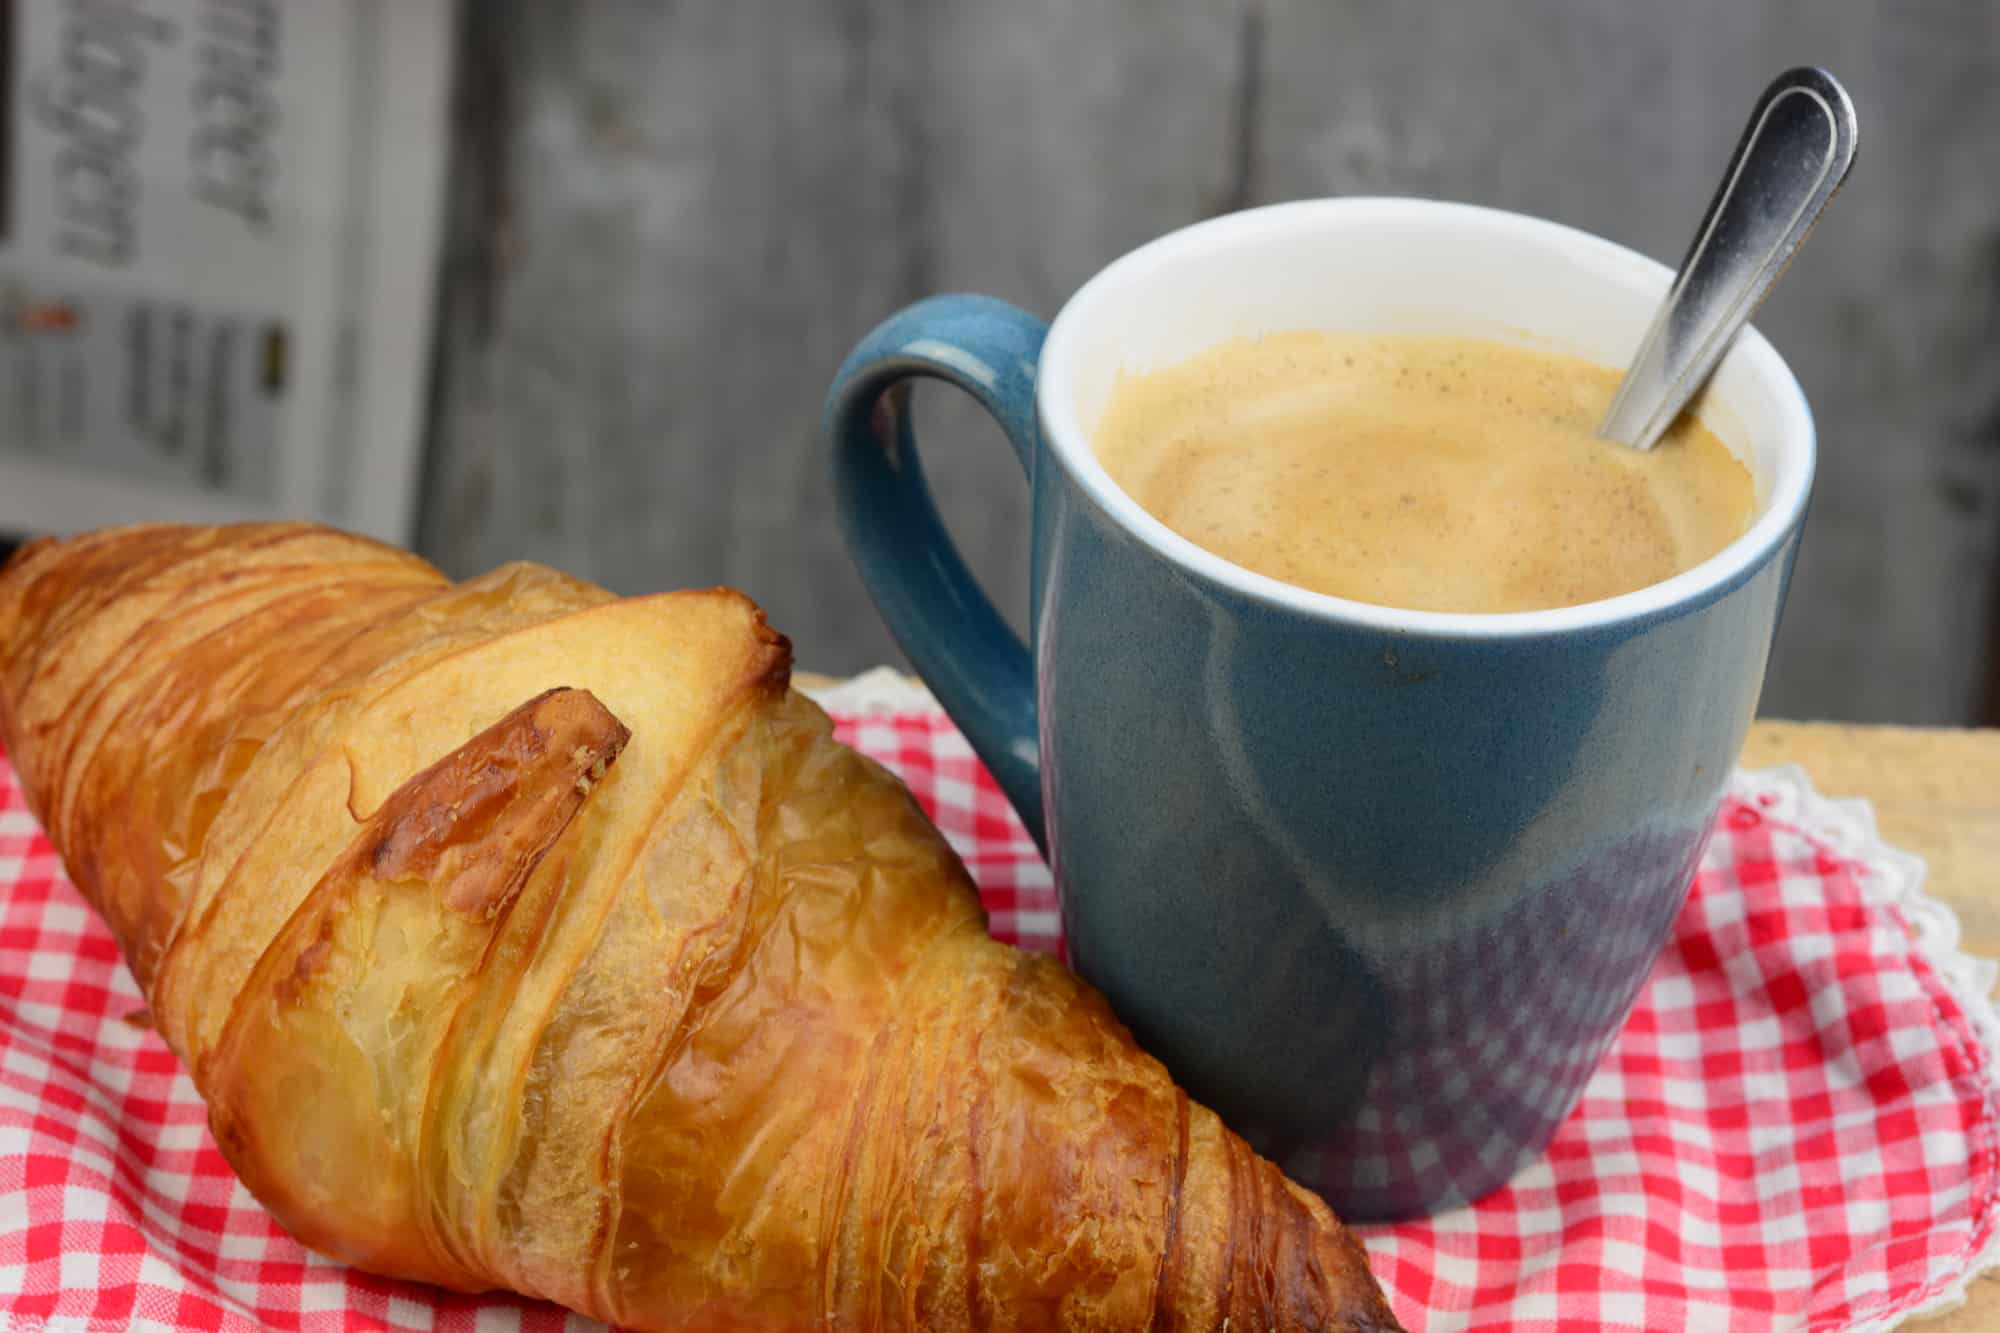 Cafe Latte and croissant on gingham picnic tablecloth